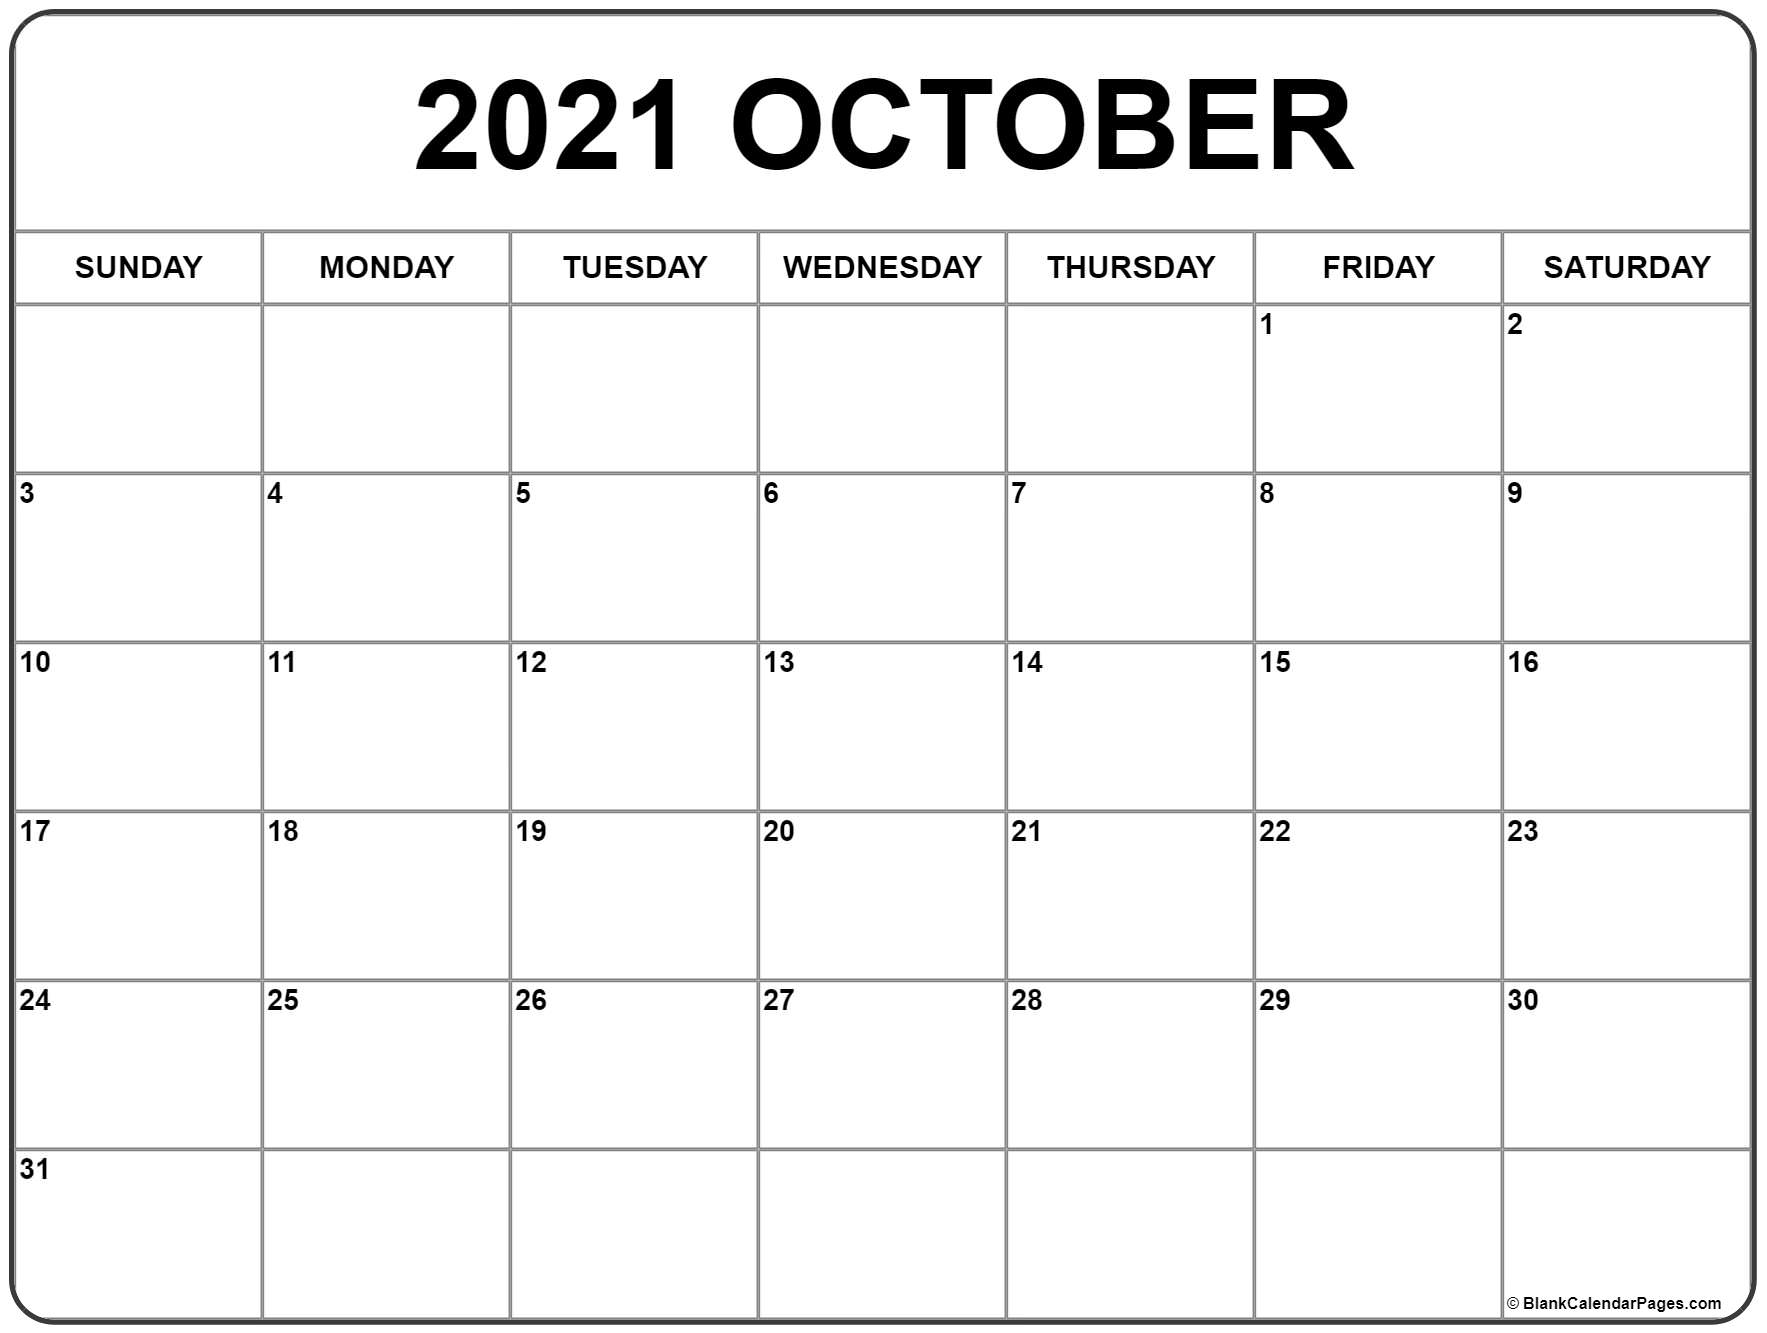 Collect October 2021 Calendar Printable Free